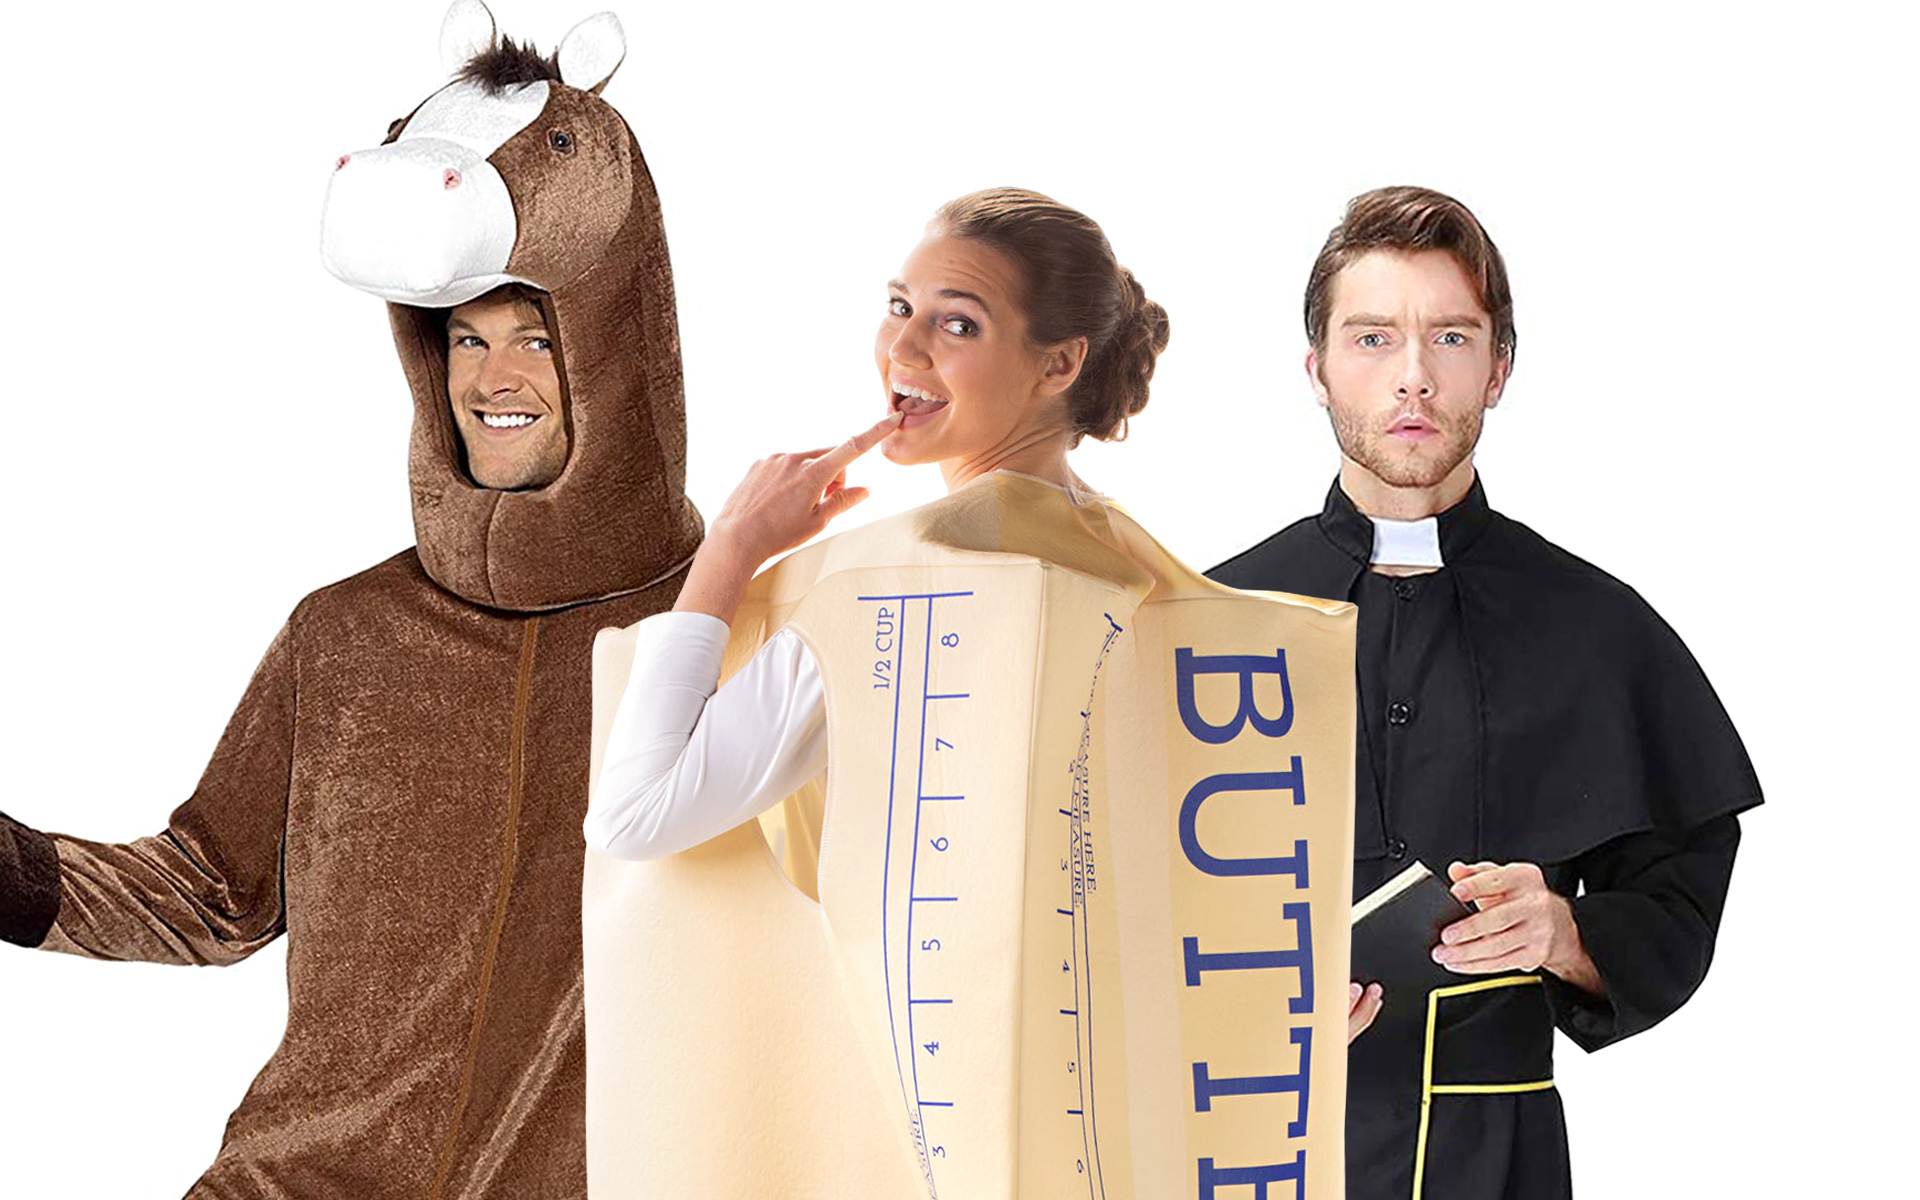 Halloween costume ideas: a horse, stick of butter, and a priest